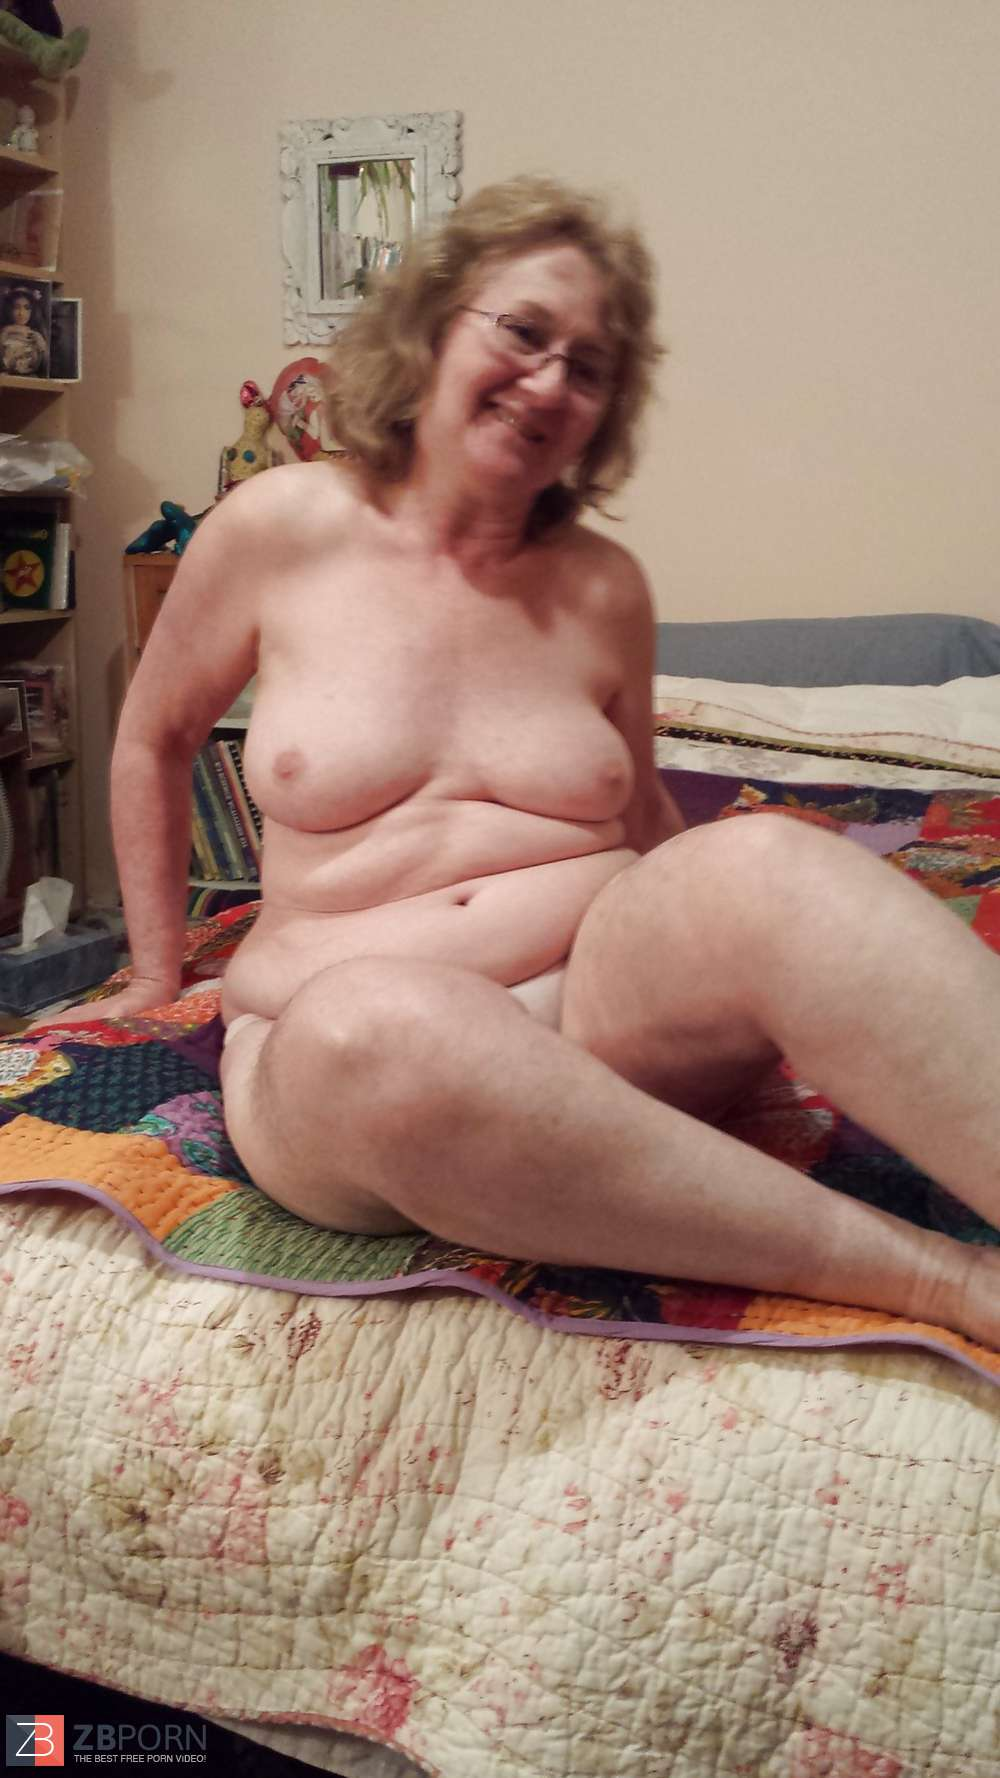 Granny Naked Pictures  Zb Porn-9666